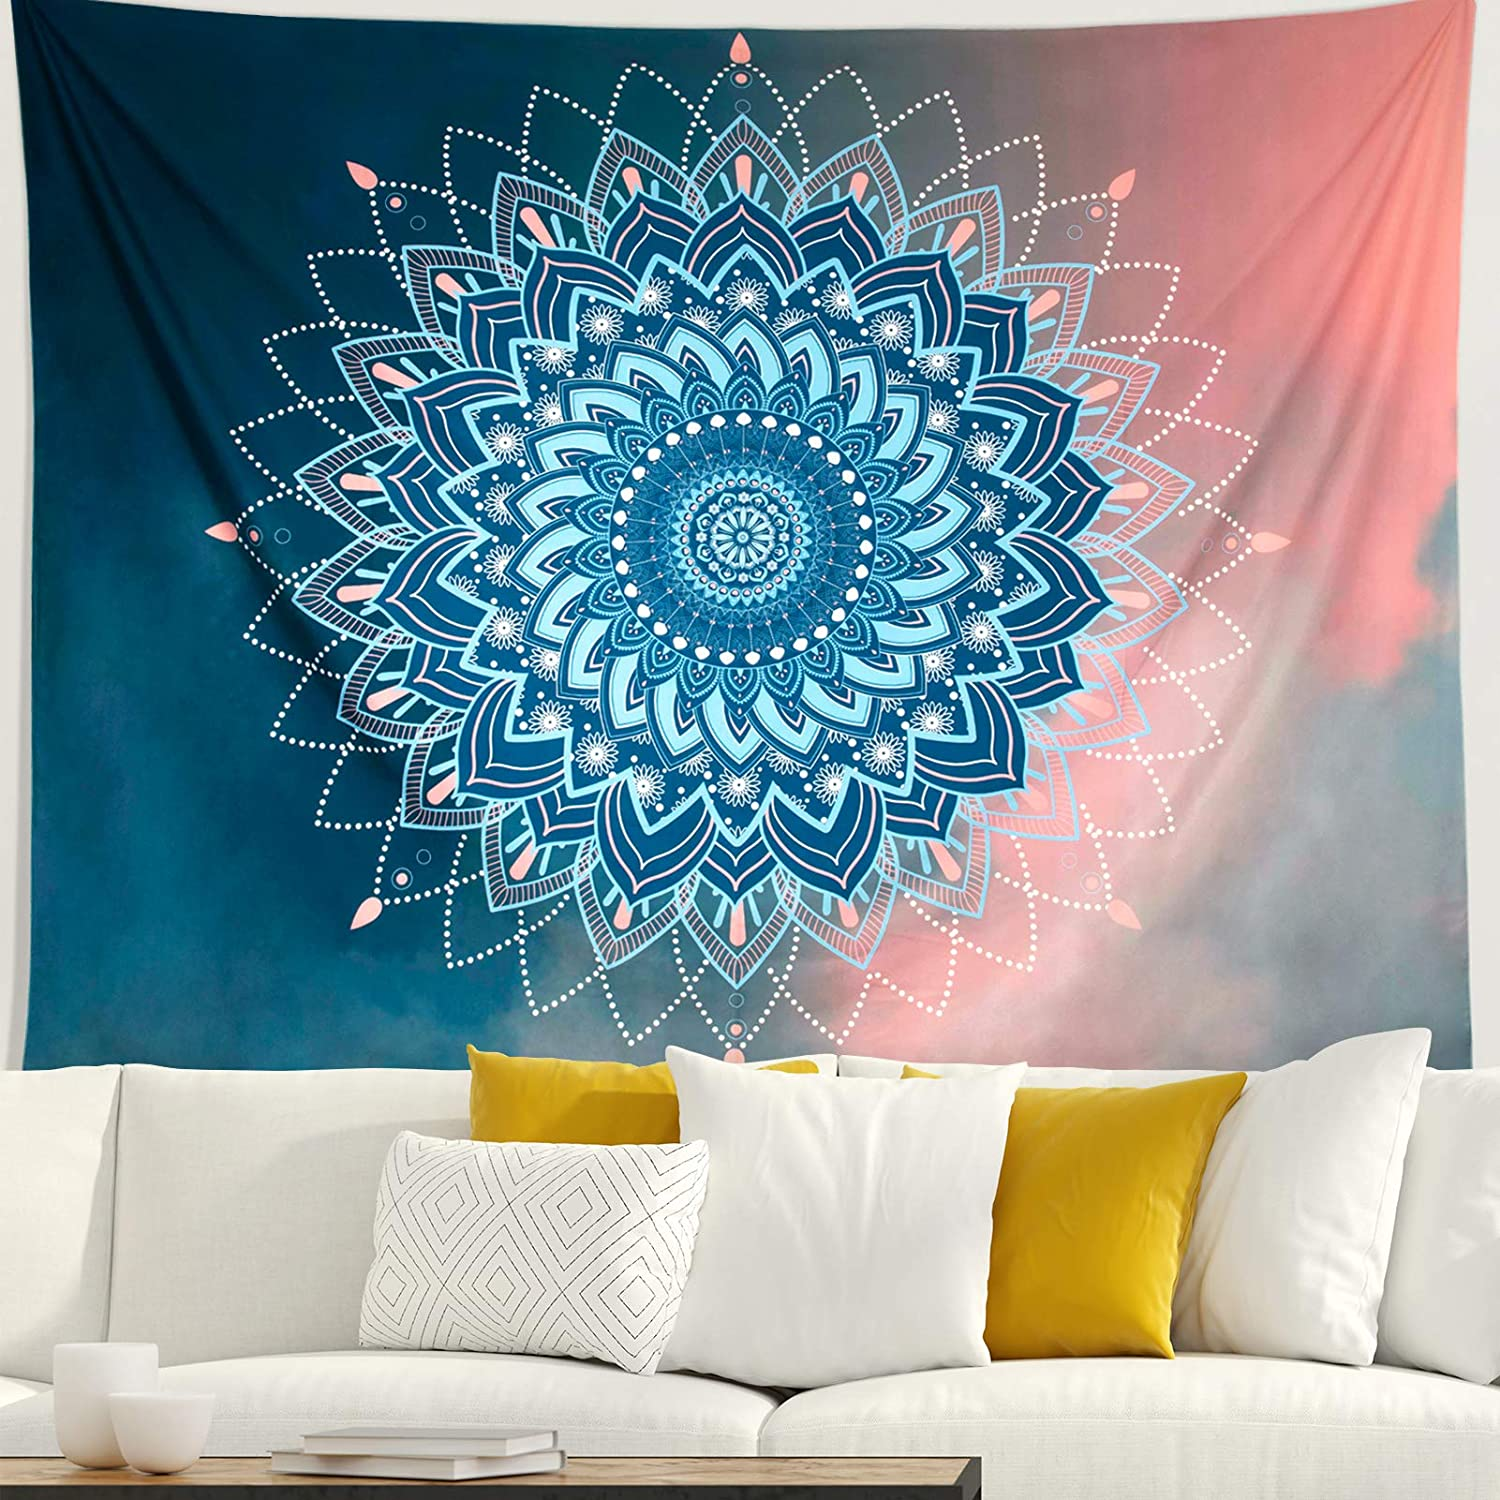 FLY SPRAY Mandala Tapestry Wall Hanging,Blue Pink Hippie Bohemian Flower Psychedelic Indian Tapestry, Mural for Bedroom Living Room Dorm Home Decor